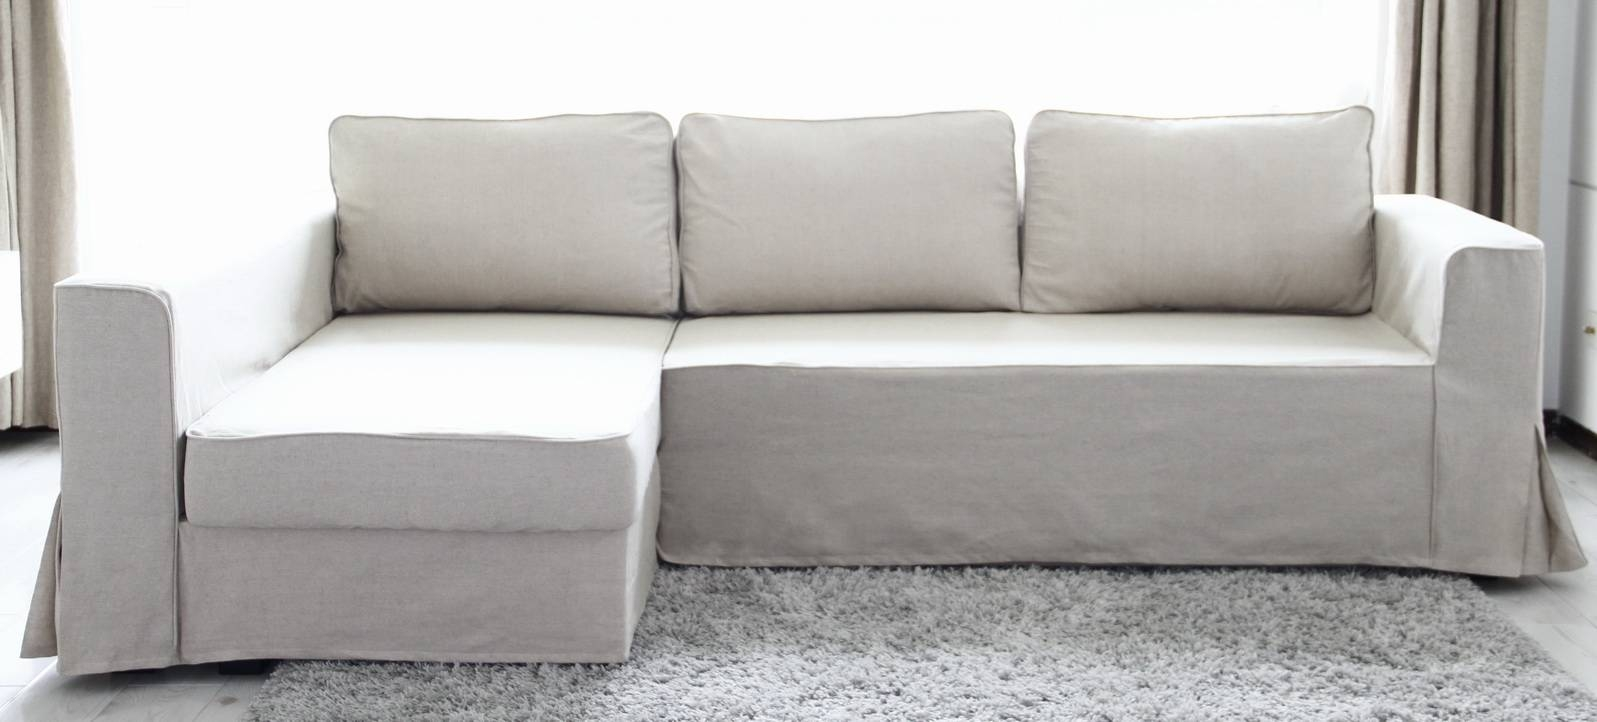 Loose Fit Linen Manstad Sofa Slipcovers Now Available Regarding Sofa Armchair Covers (View 26 of 30)